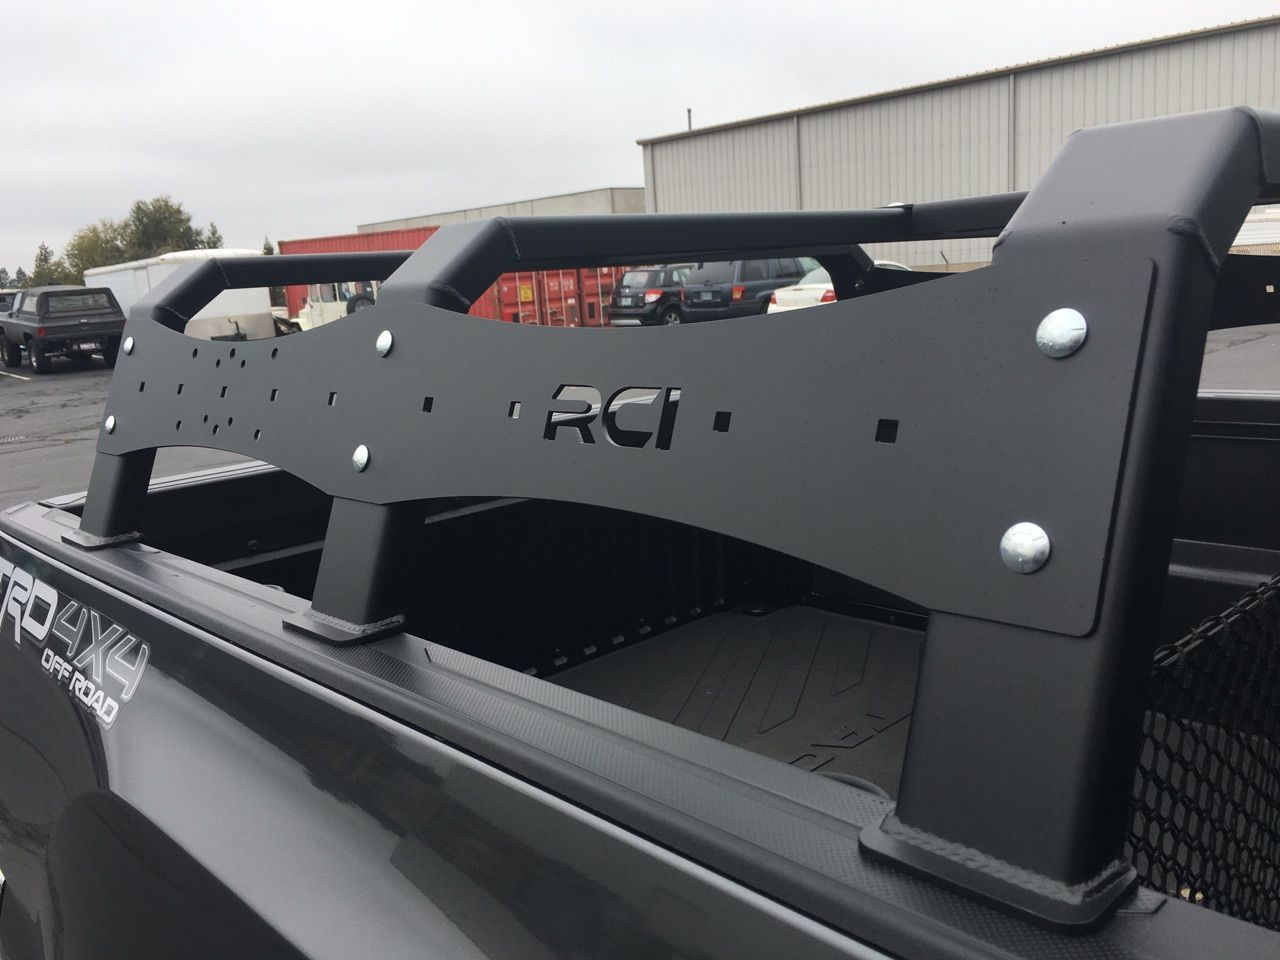 Rci Bed Rack Side View Campingtentsluxury Tacoma Bed Rack Roof Top Tent Truck Bed